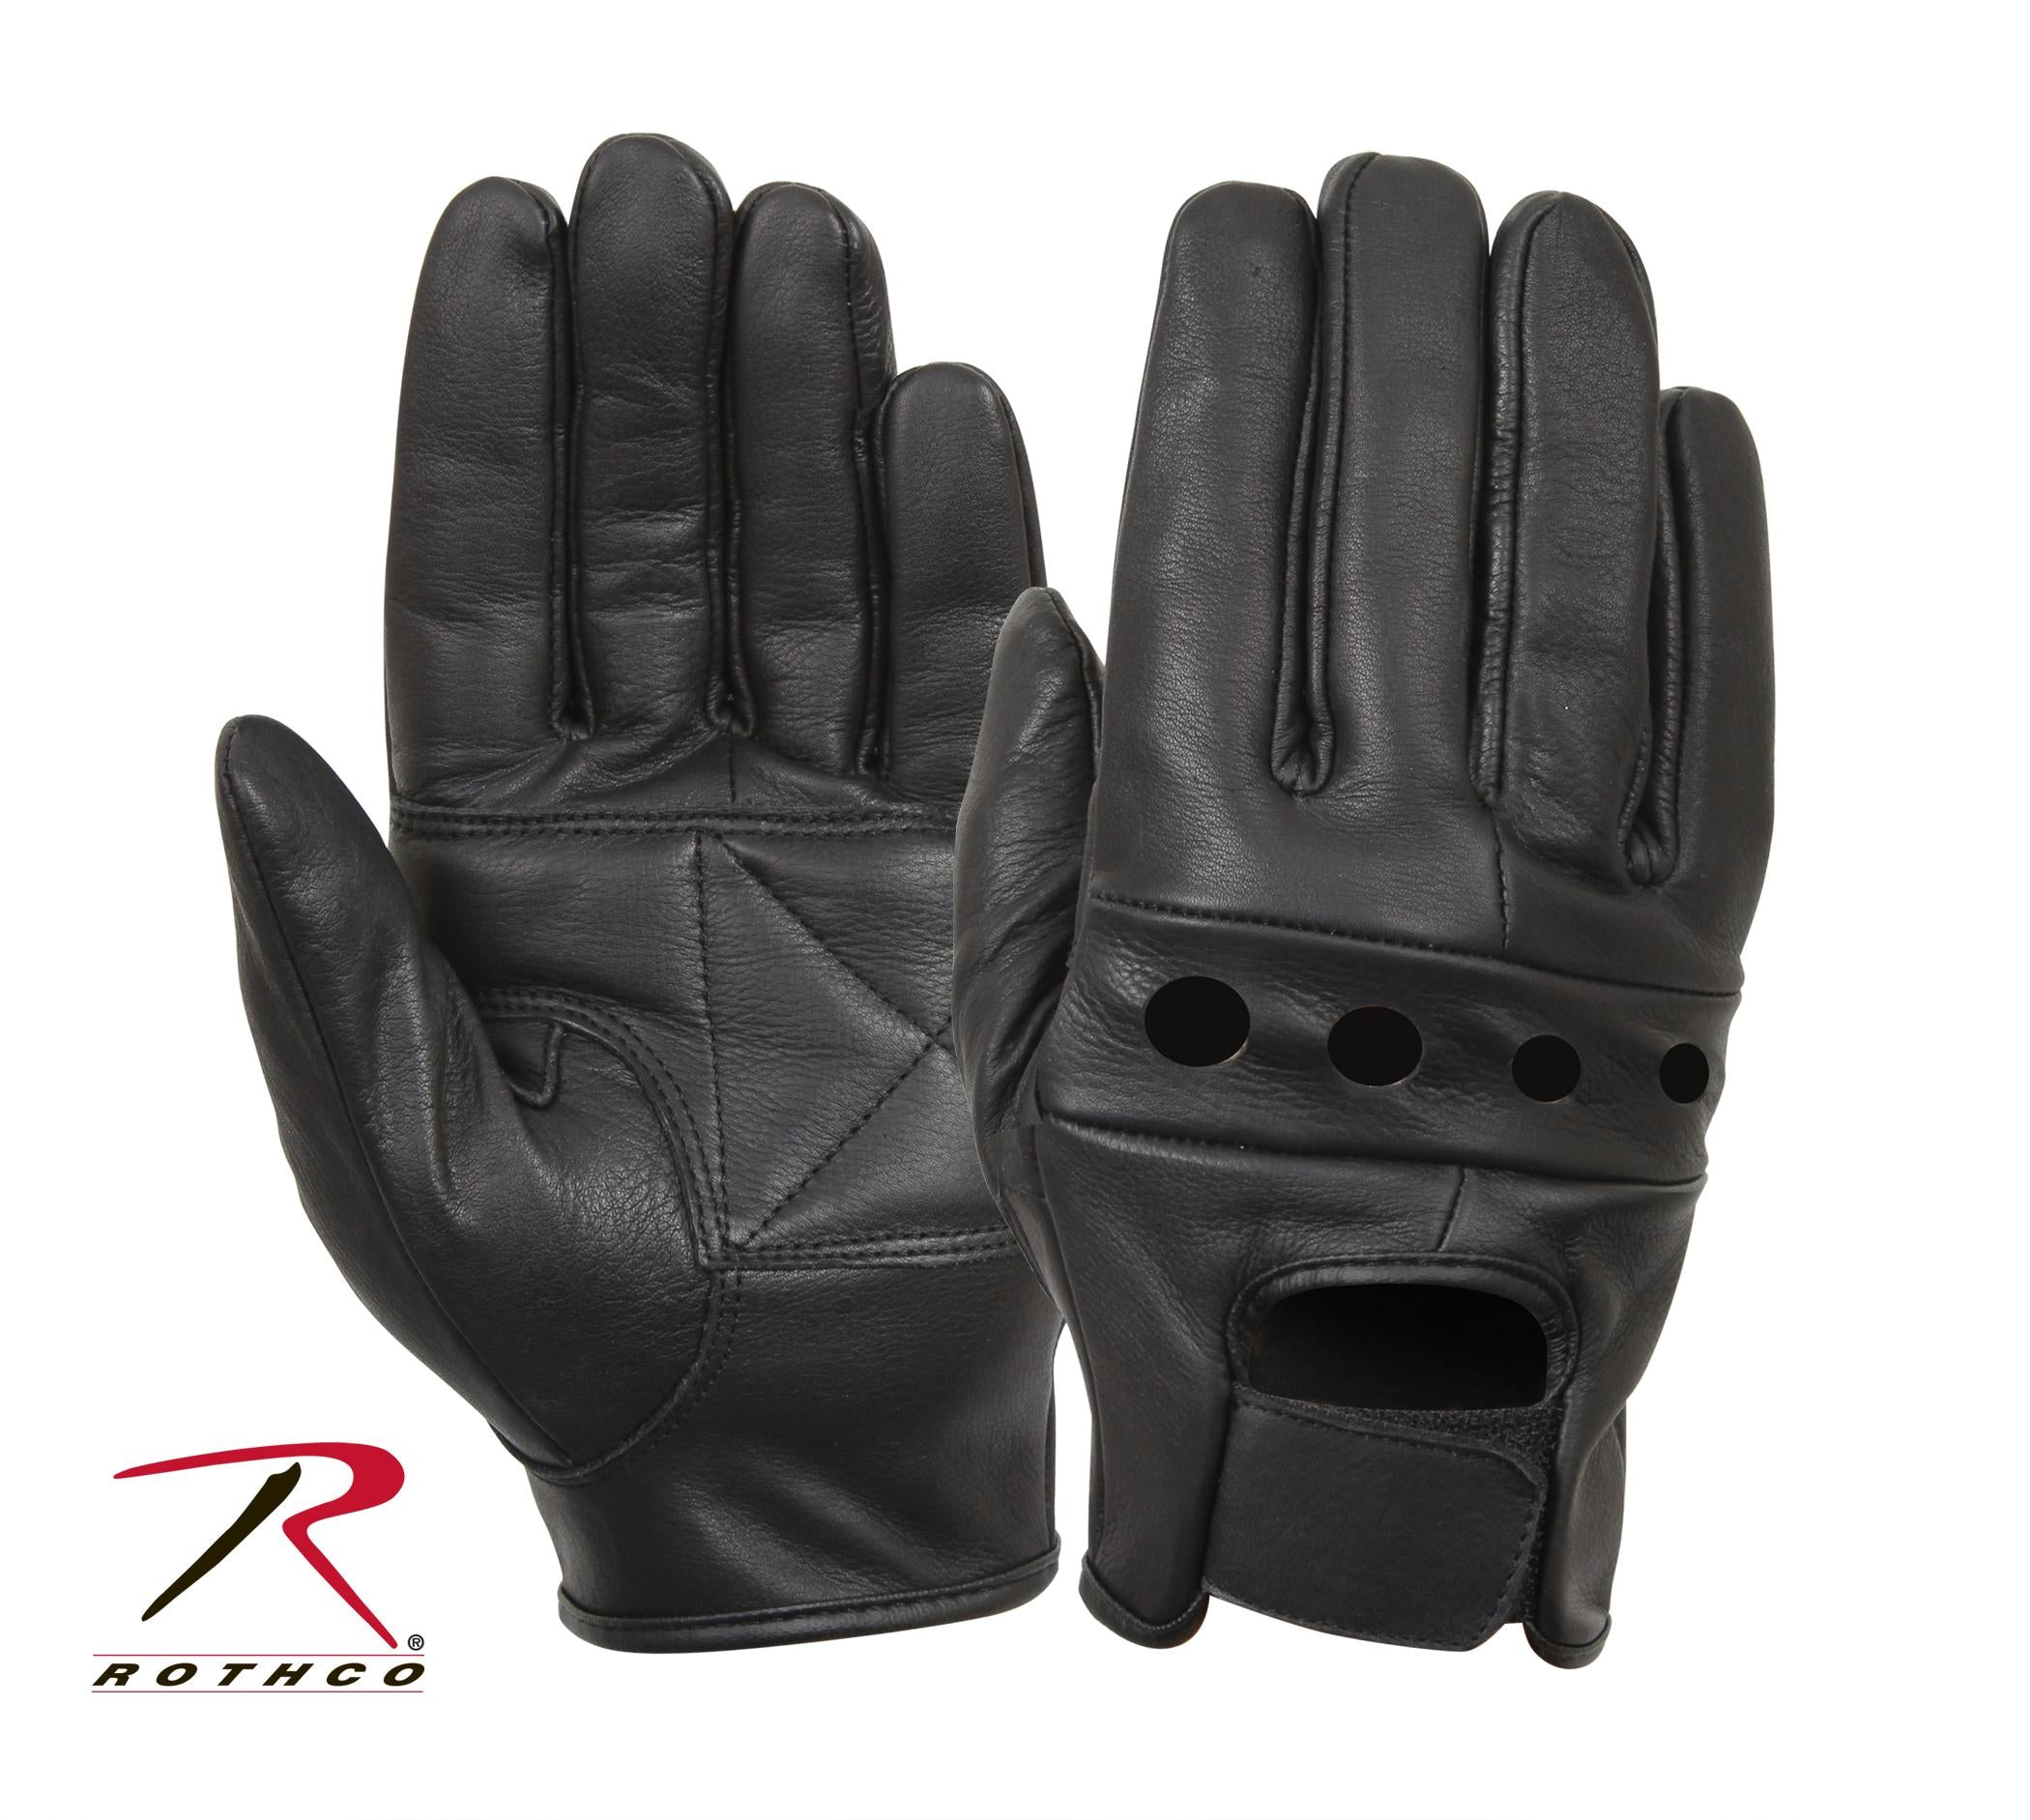 Rothco Leather Motorcycle Gloves - S